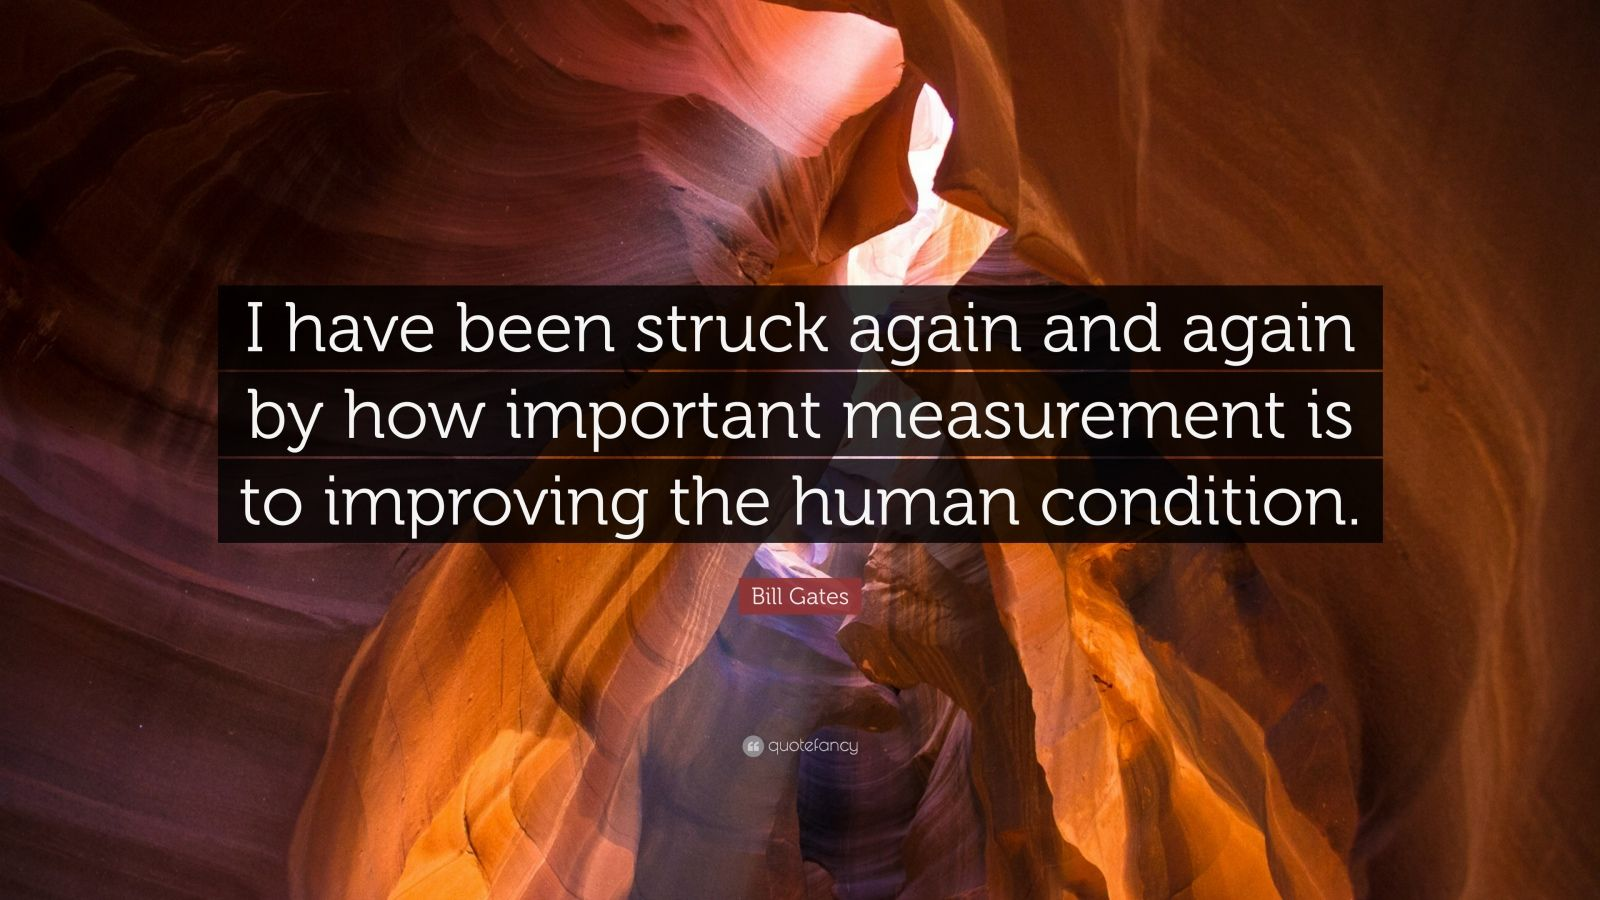 """Bill Gates Quote: """"I have been struck again and again by how important measurement is to improving the human condition."""""""